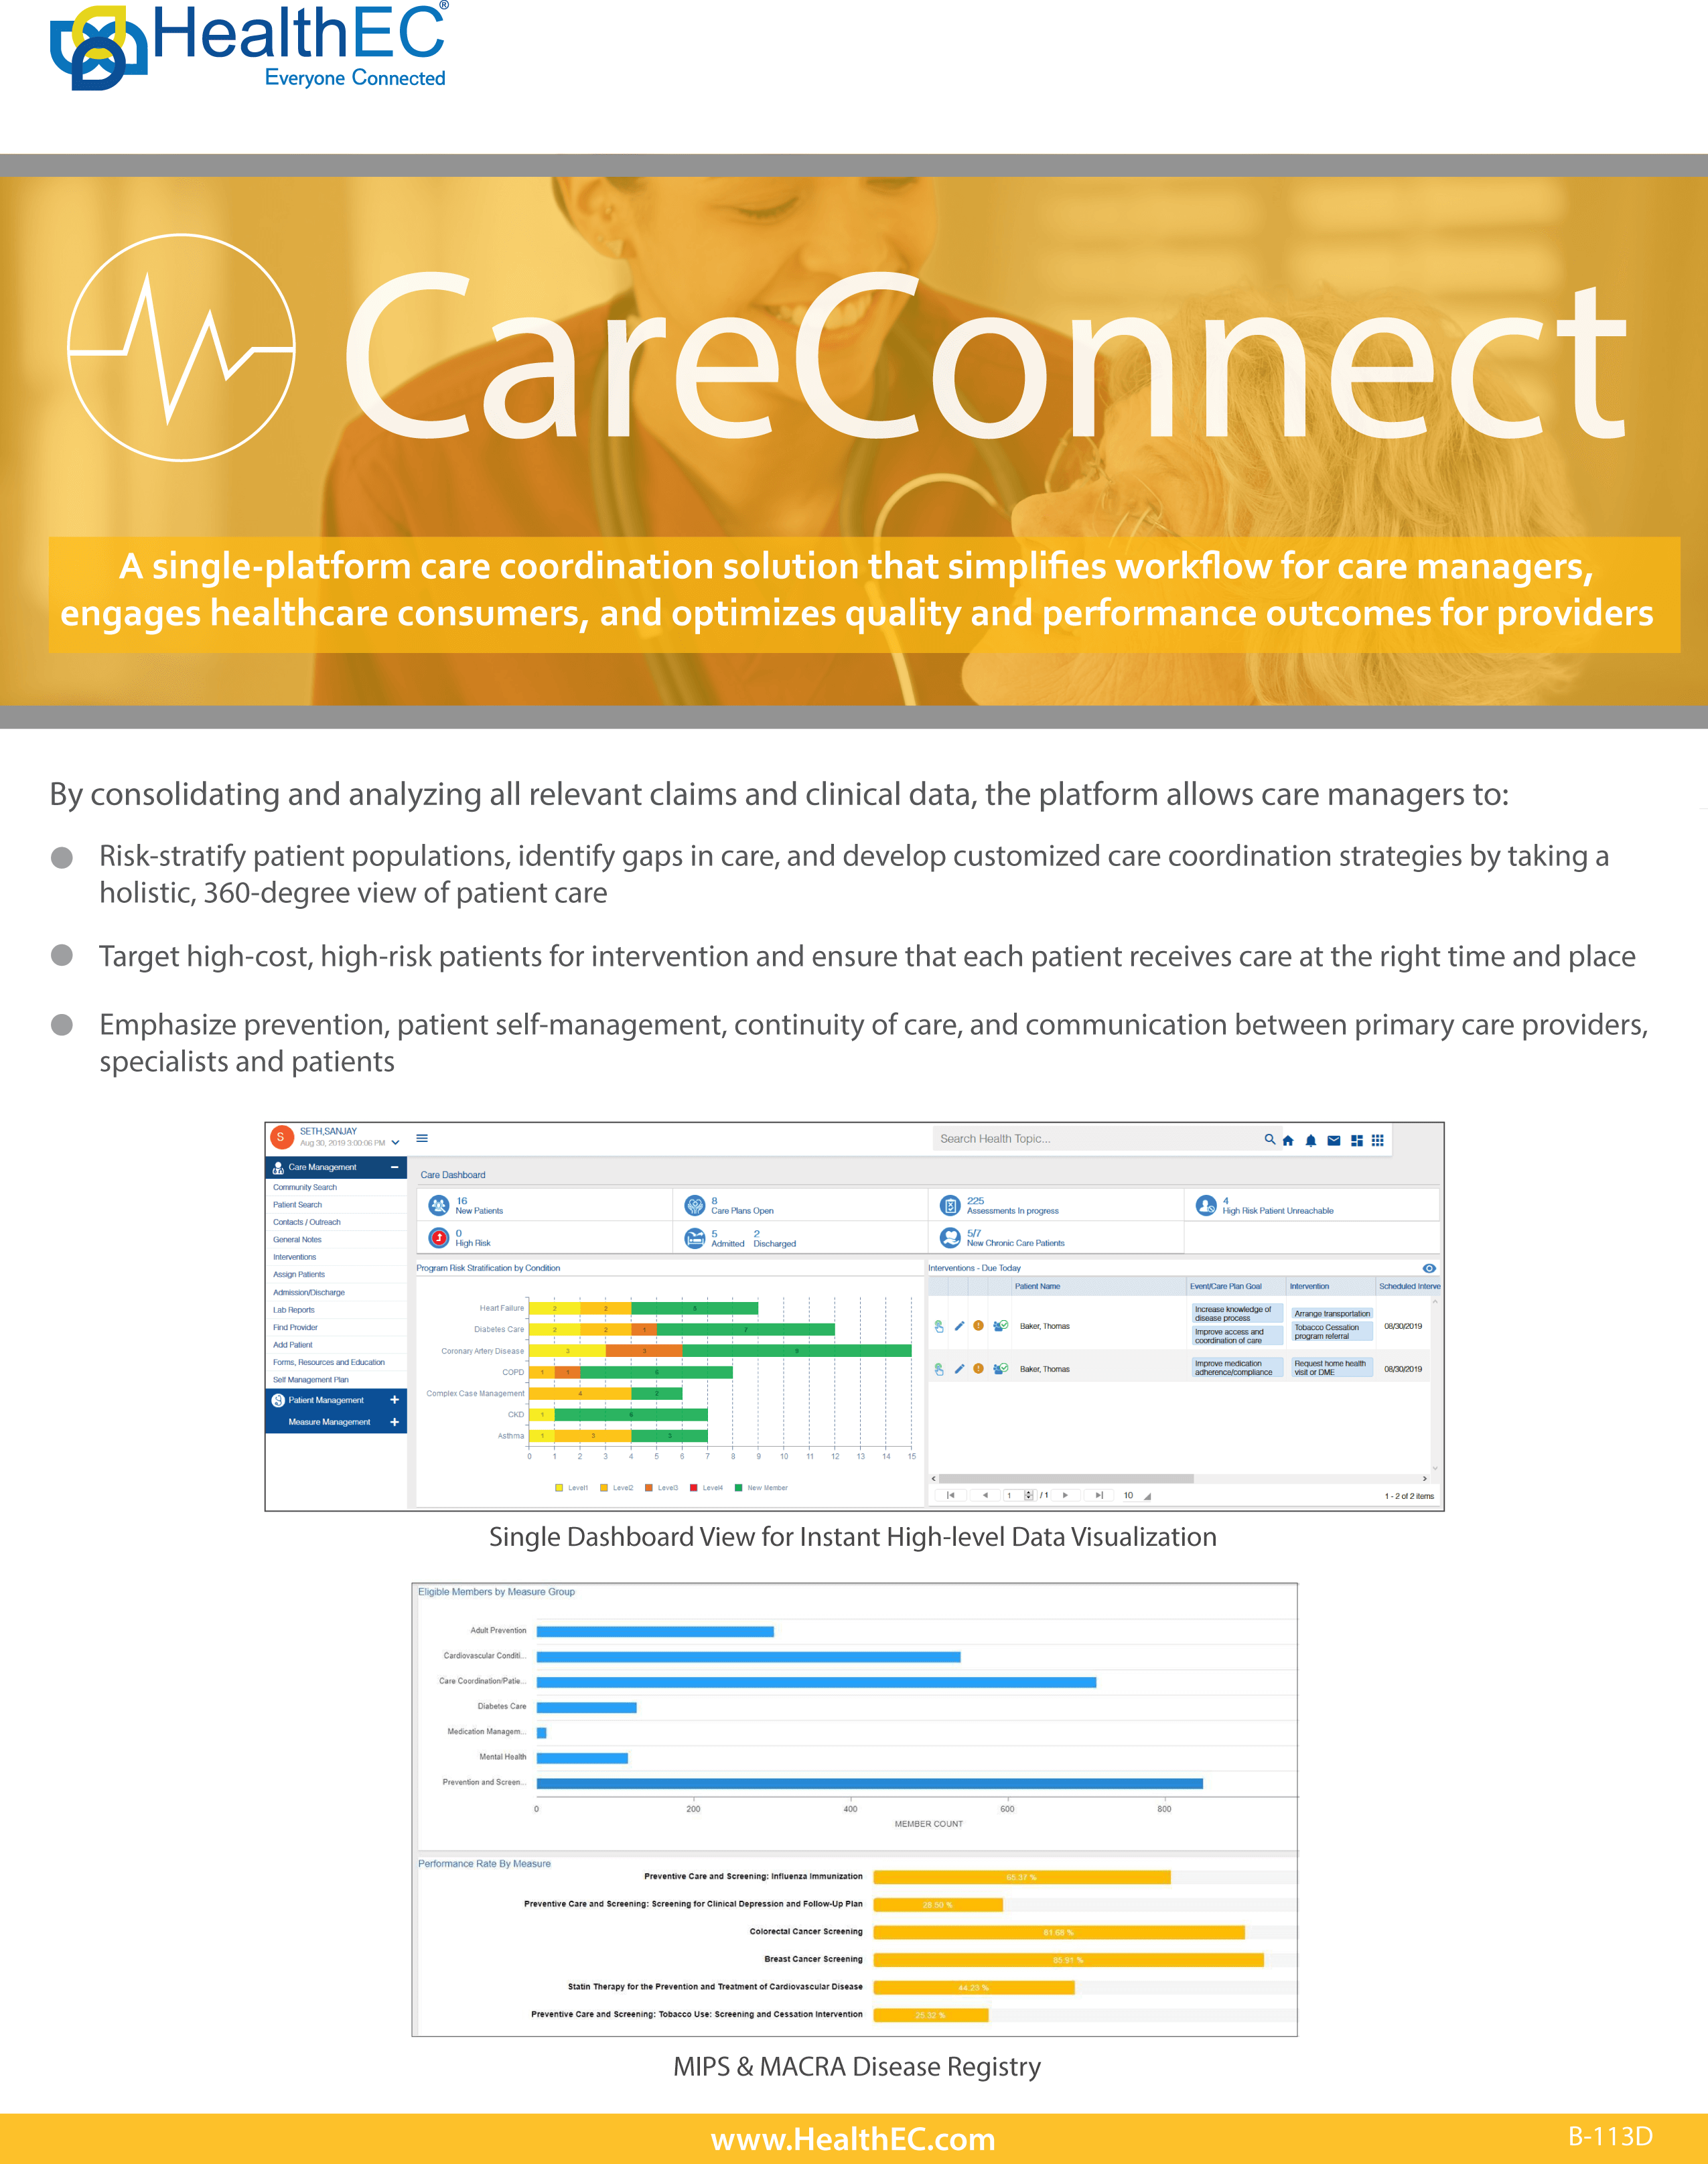 CareConnect Product Overview1 copy